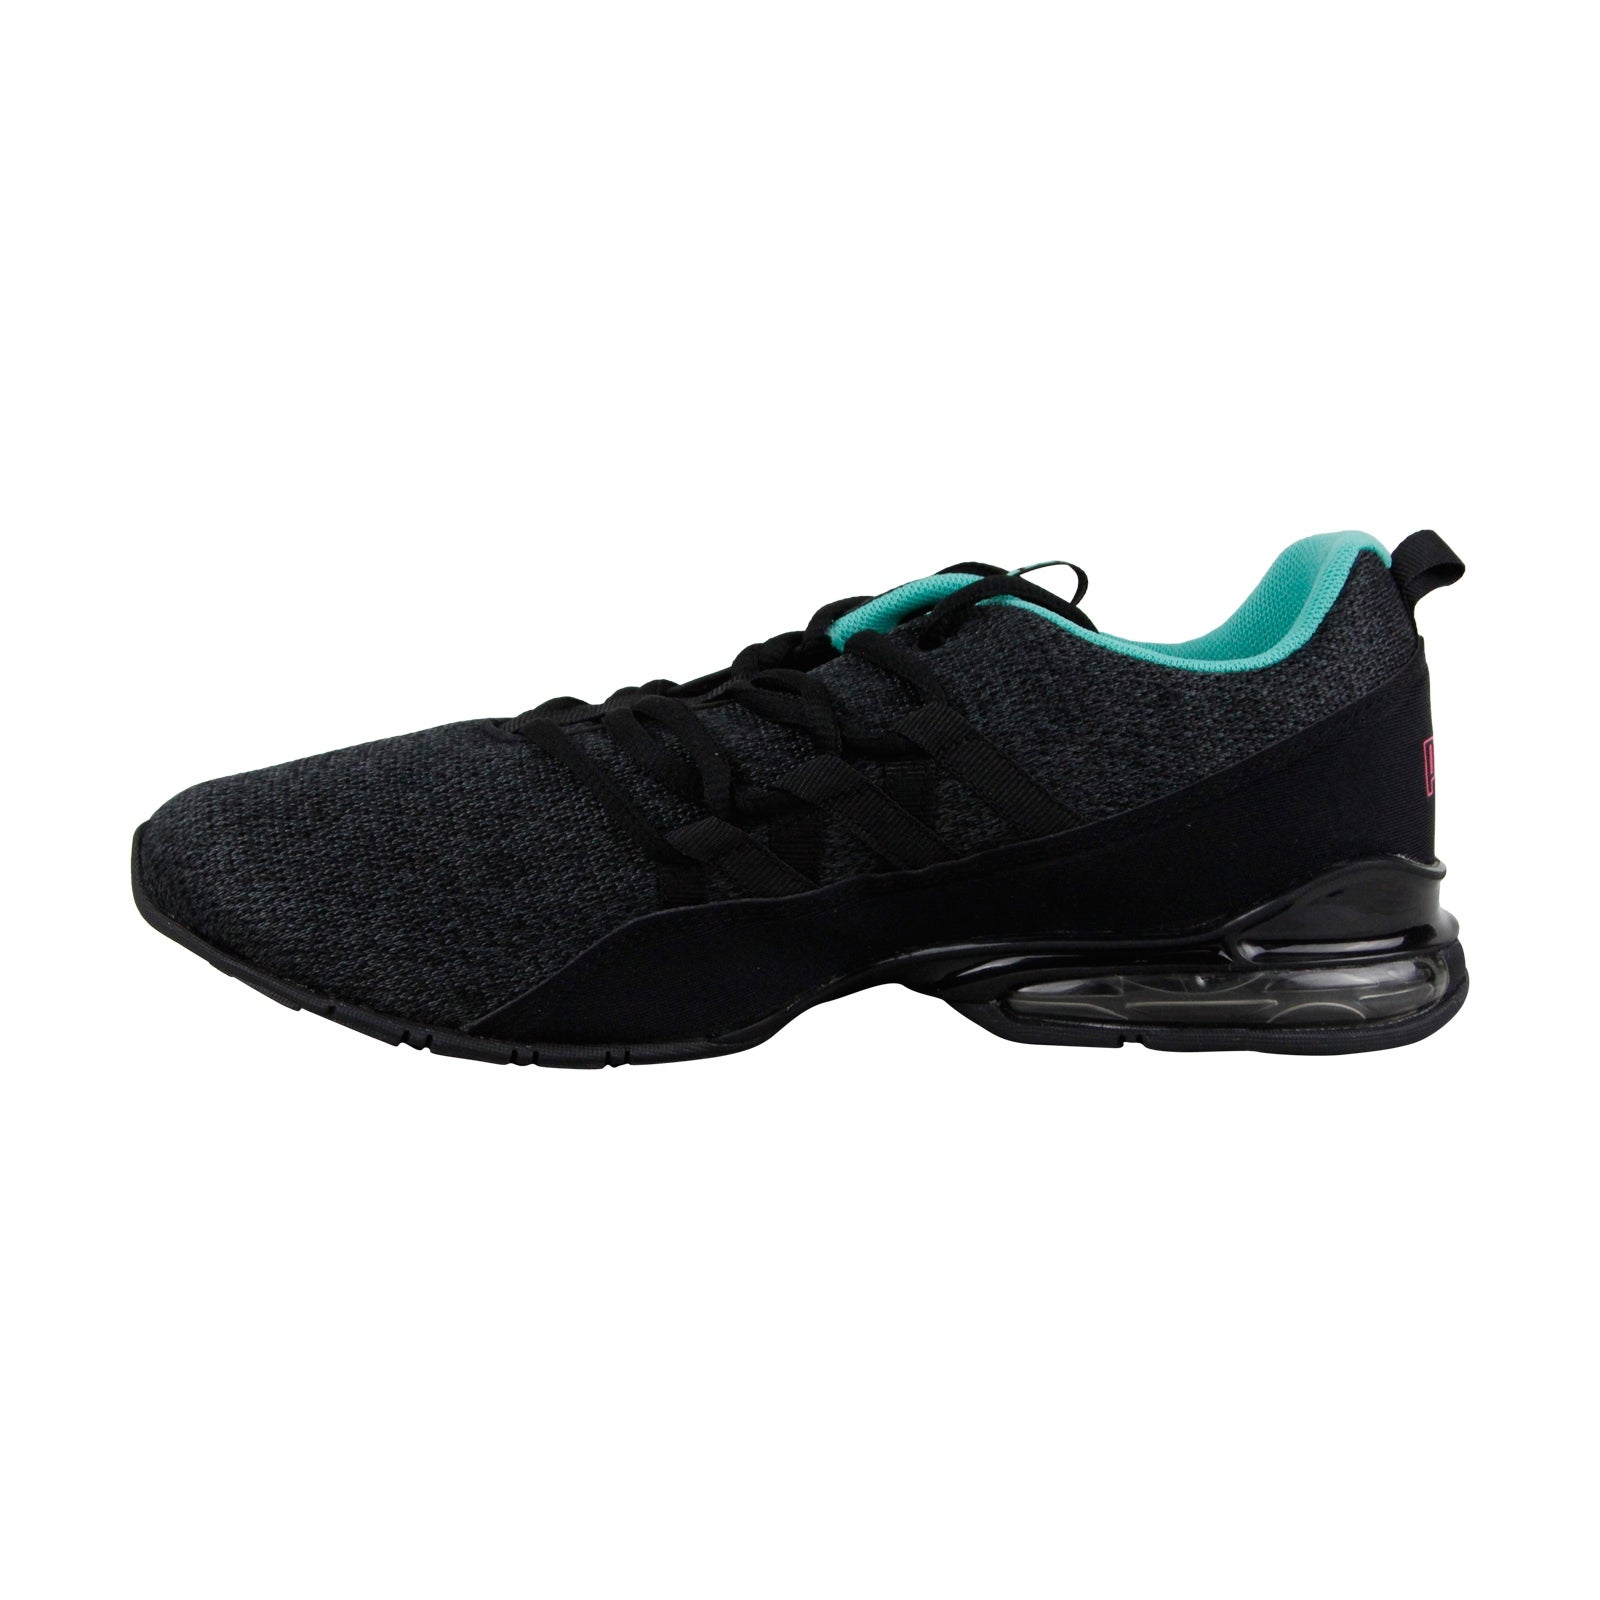 Shop Puma Riaze Prowl Womens Black Textile Athletic Lace Up Running Shoes -  Free Shipping Today - Overstock - 25364974 018d3fdee